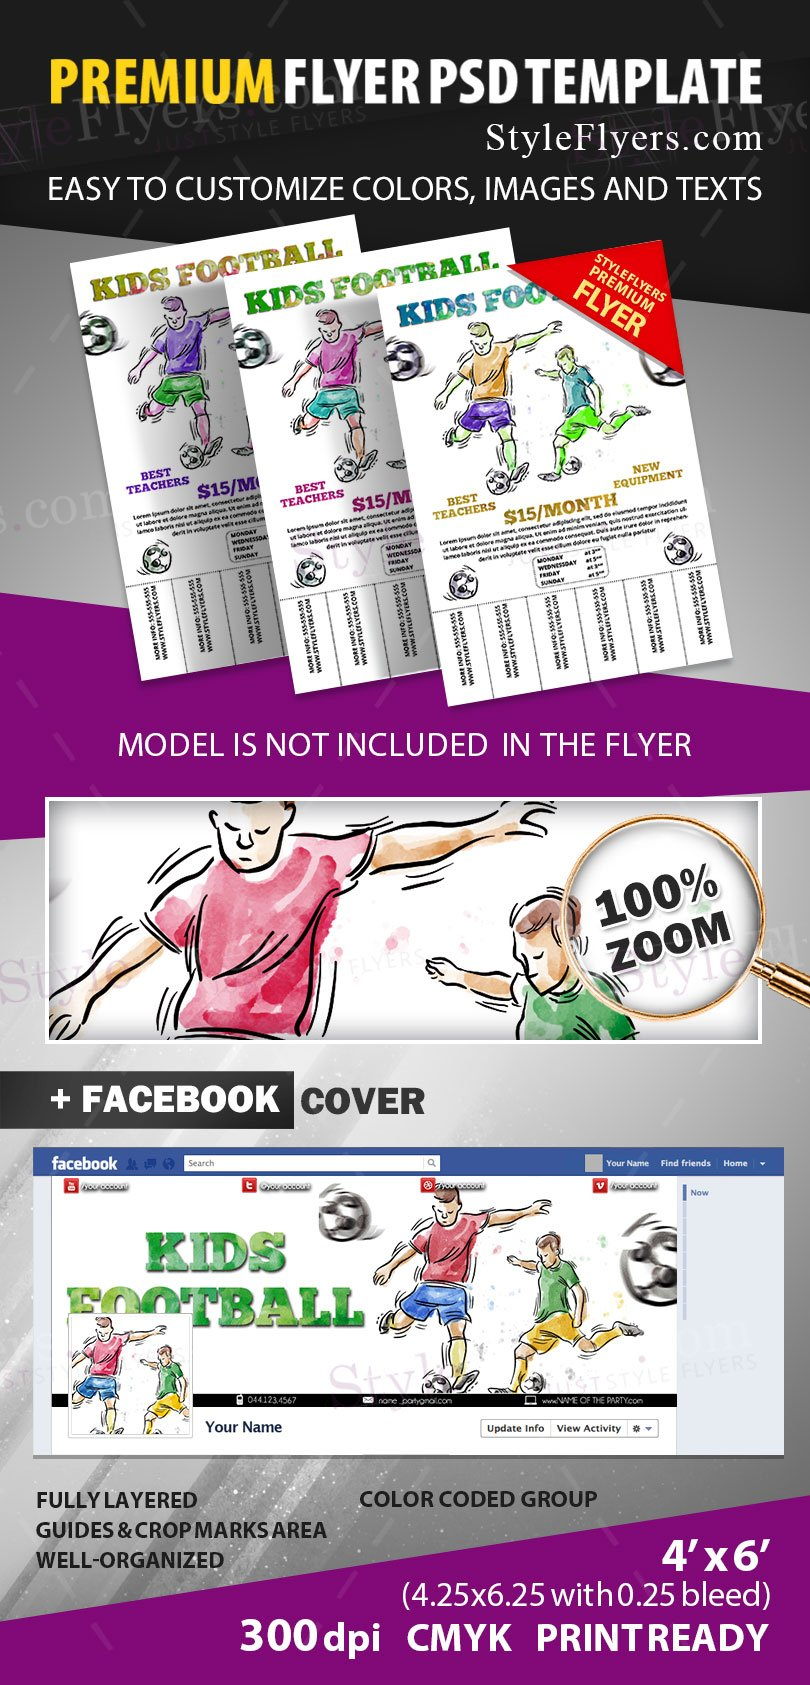 Pull Tab PSD Flyer Template #11963 - Styleflyers